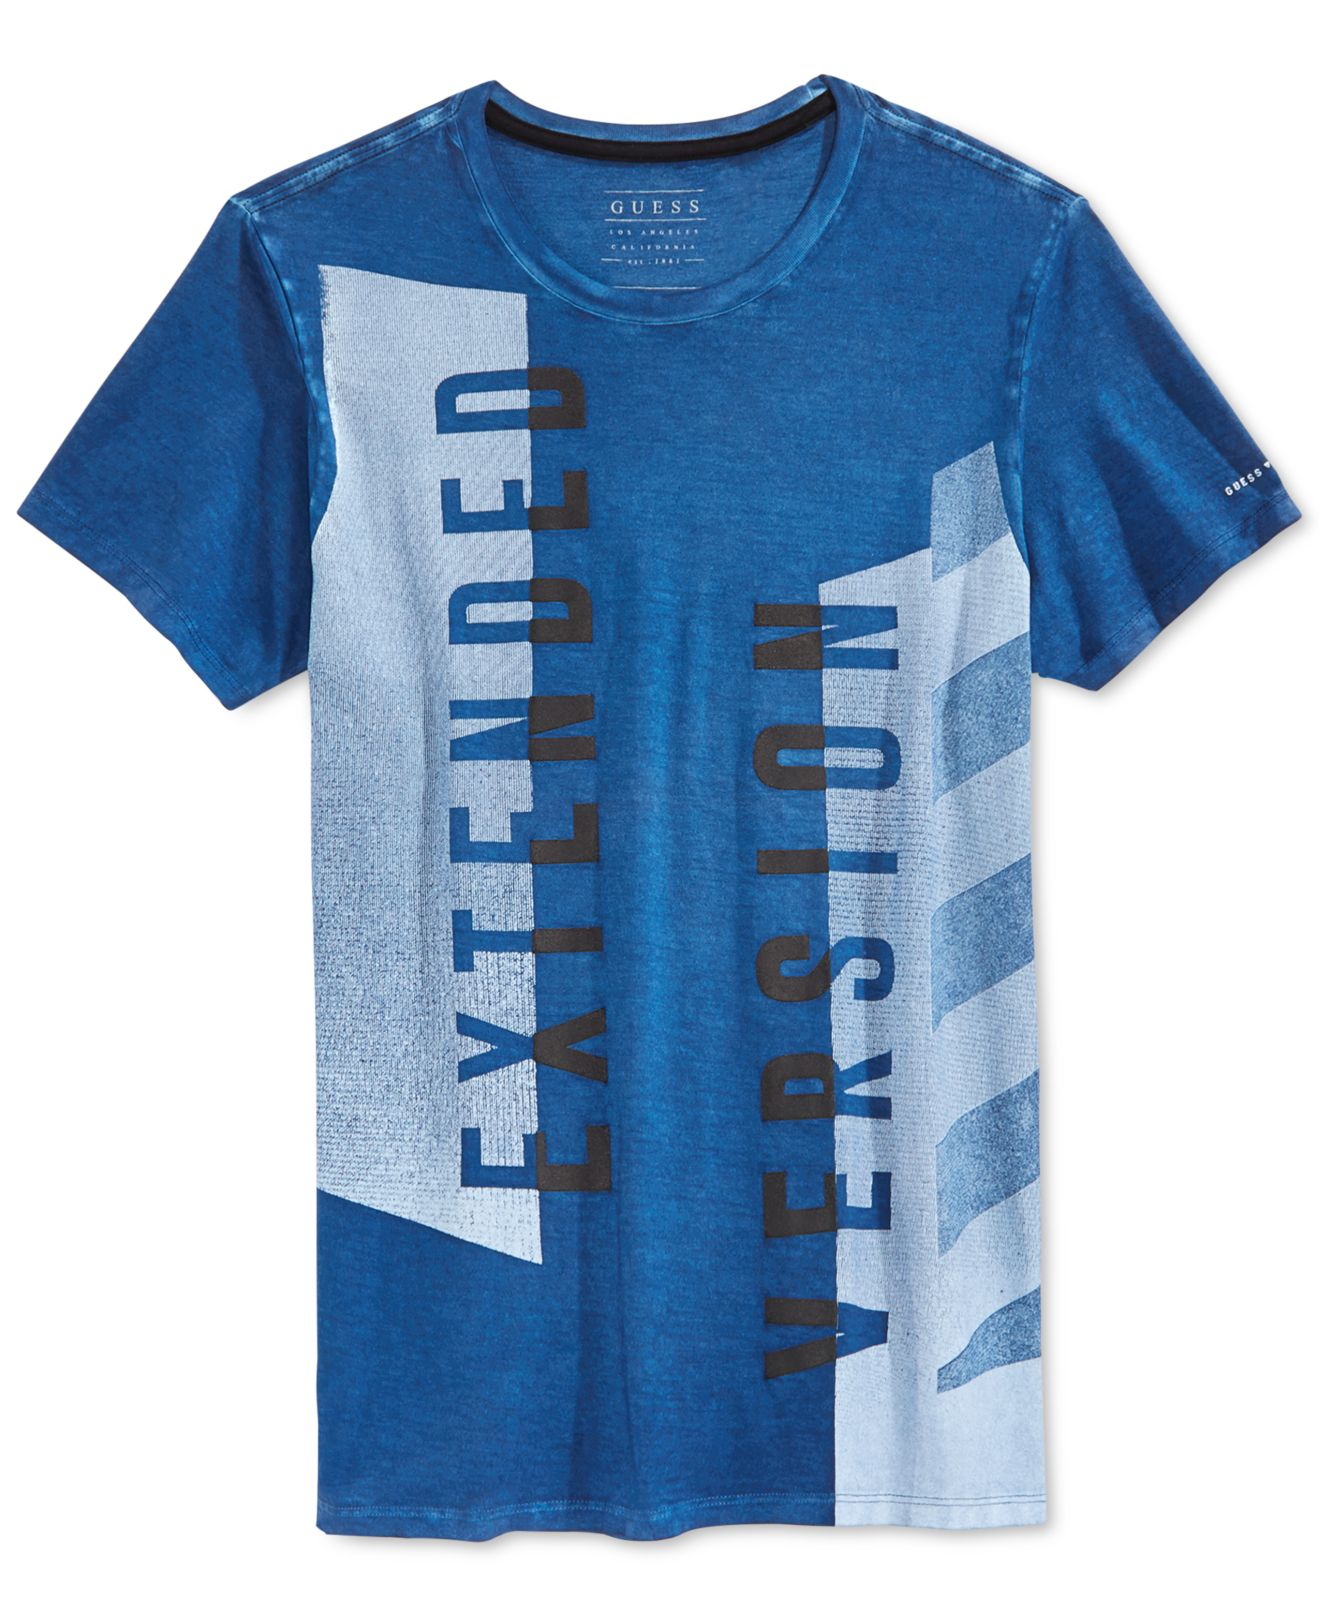 guess extended version t shirt in blue for men lyst. Black Bedroom Furniture Sets. Home Design Ideas